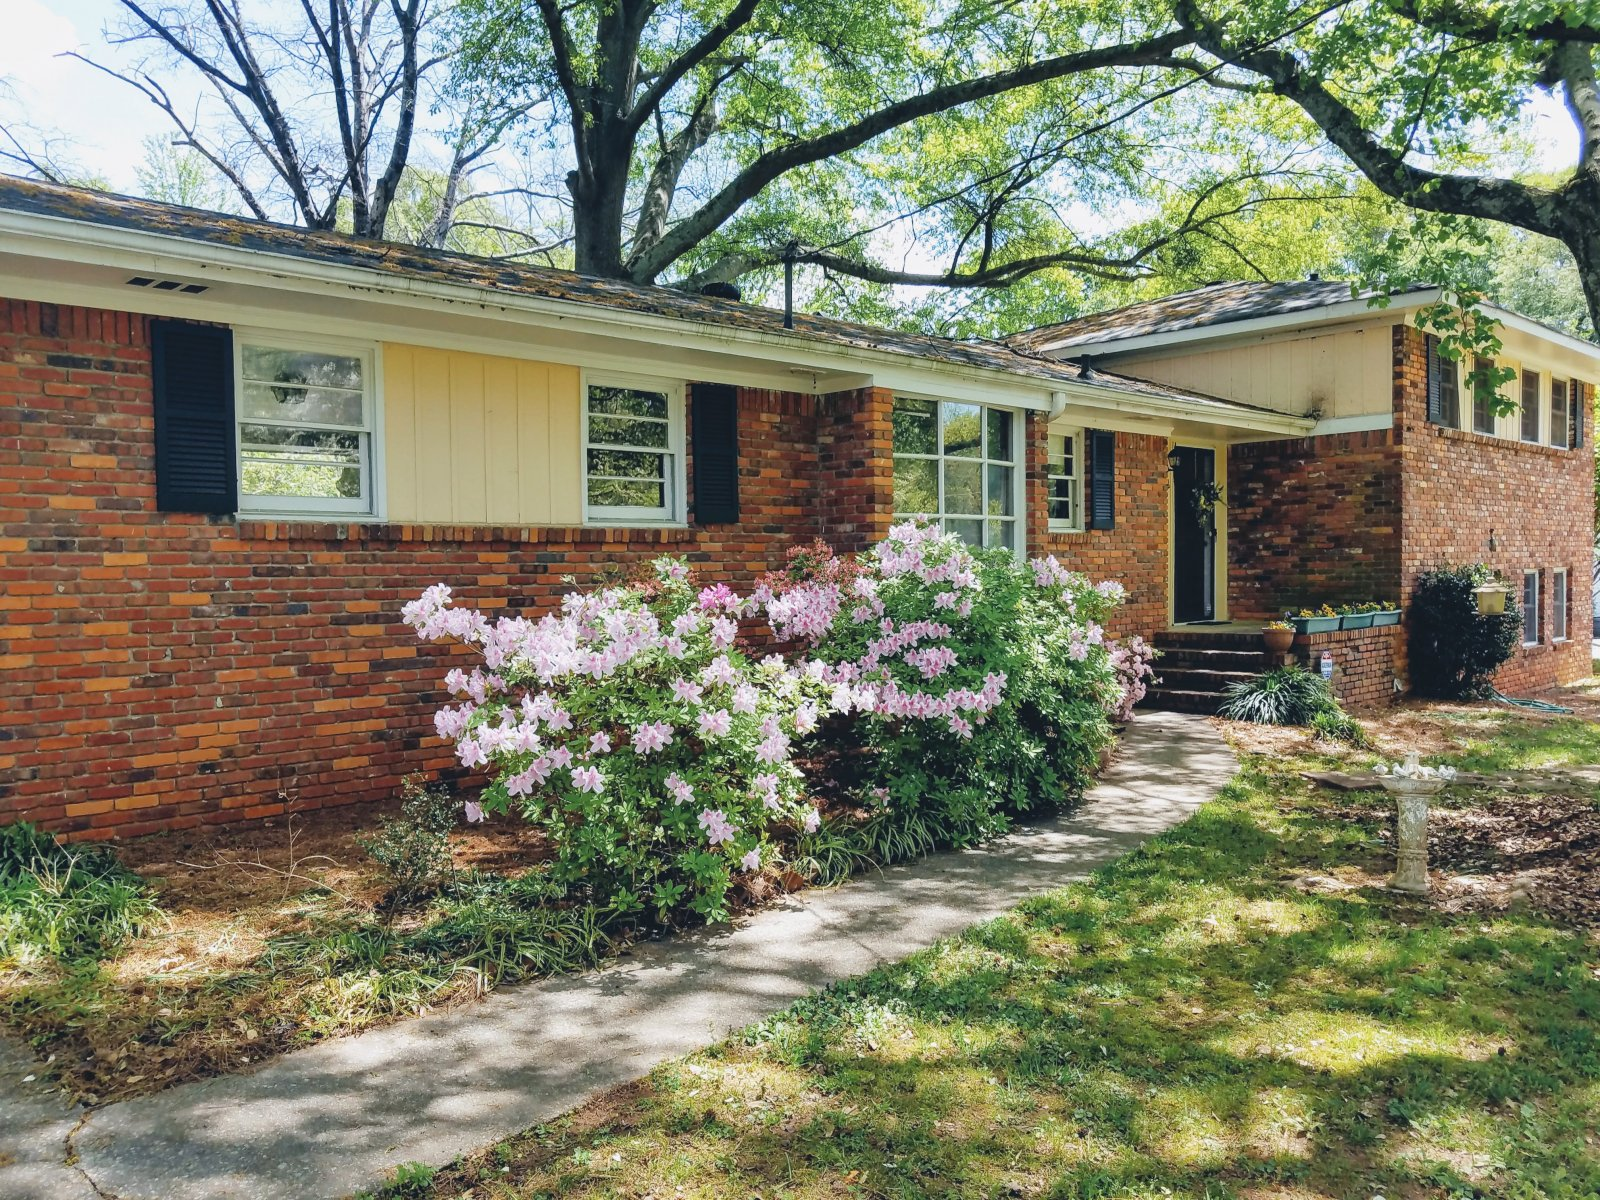 Homes for sale in Suwanee, GA